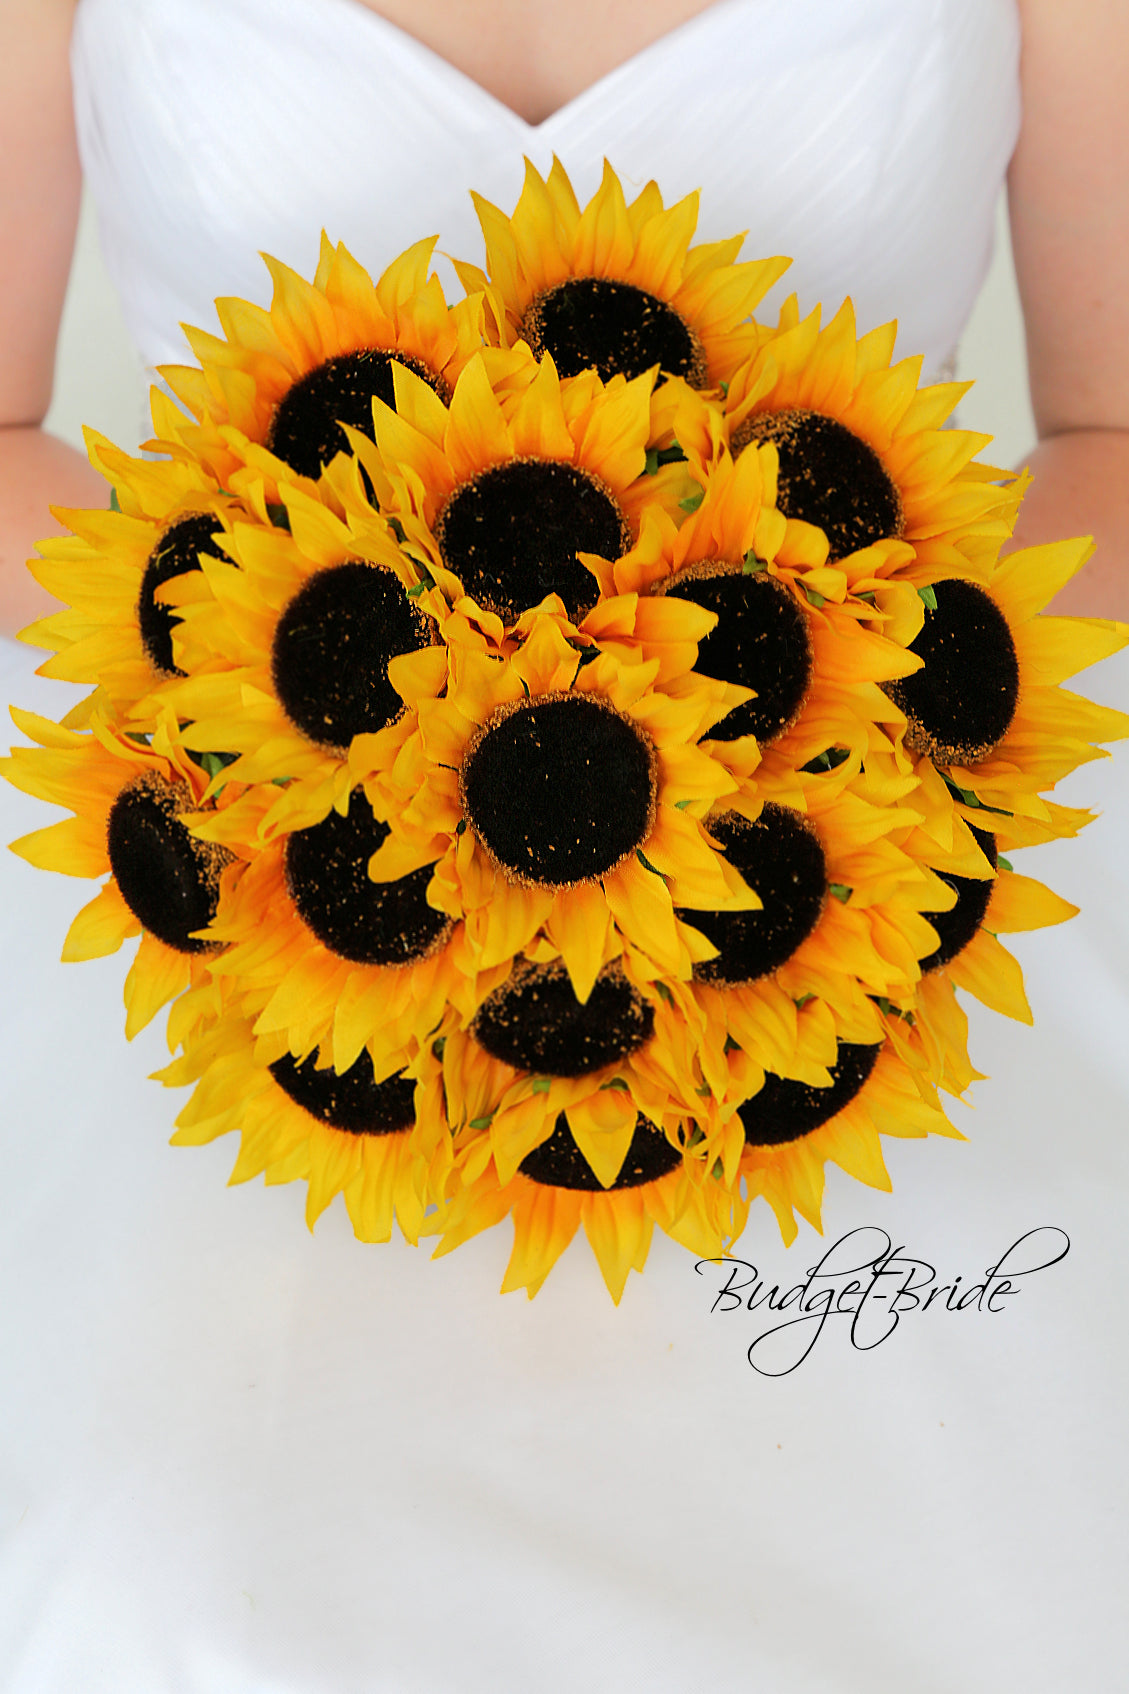 Sunflower Collection #201773 - $35 - $235